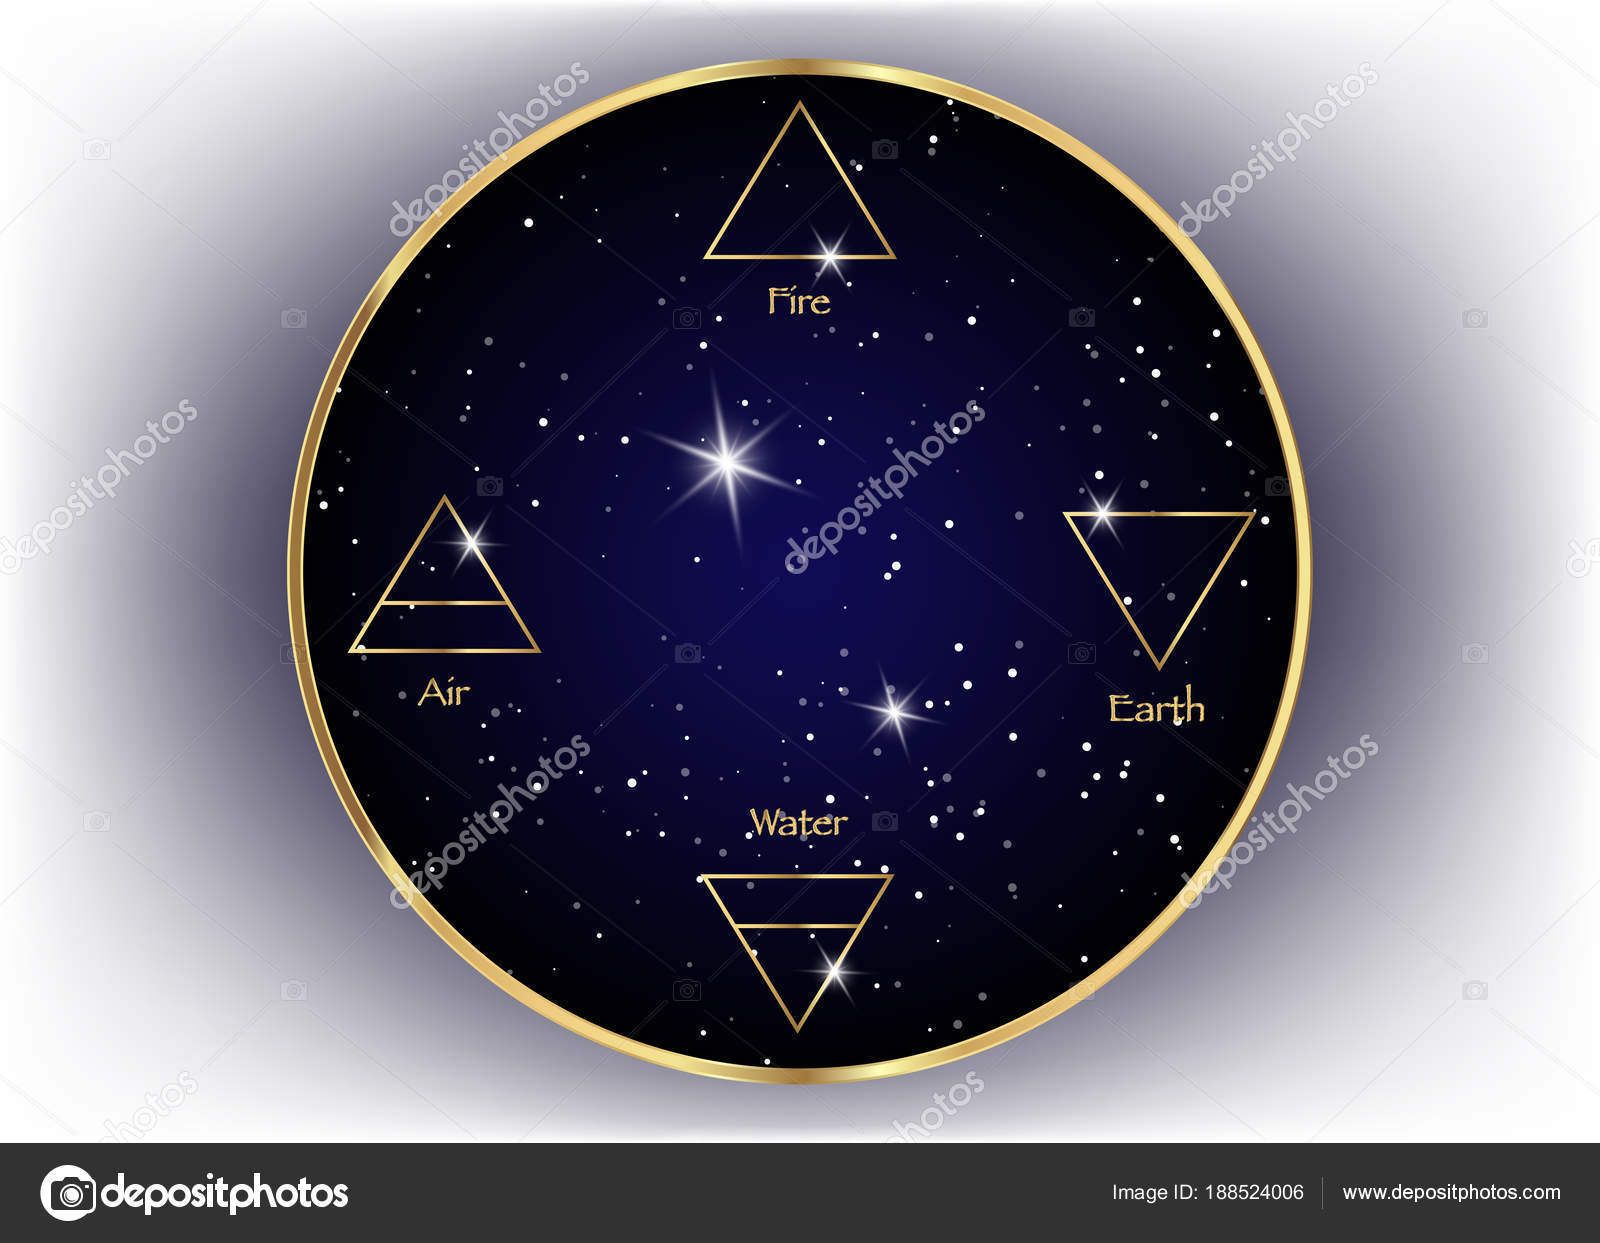 Icon Elements Air Earth Fire And Water Wiccan Divination